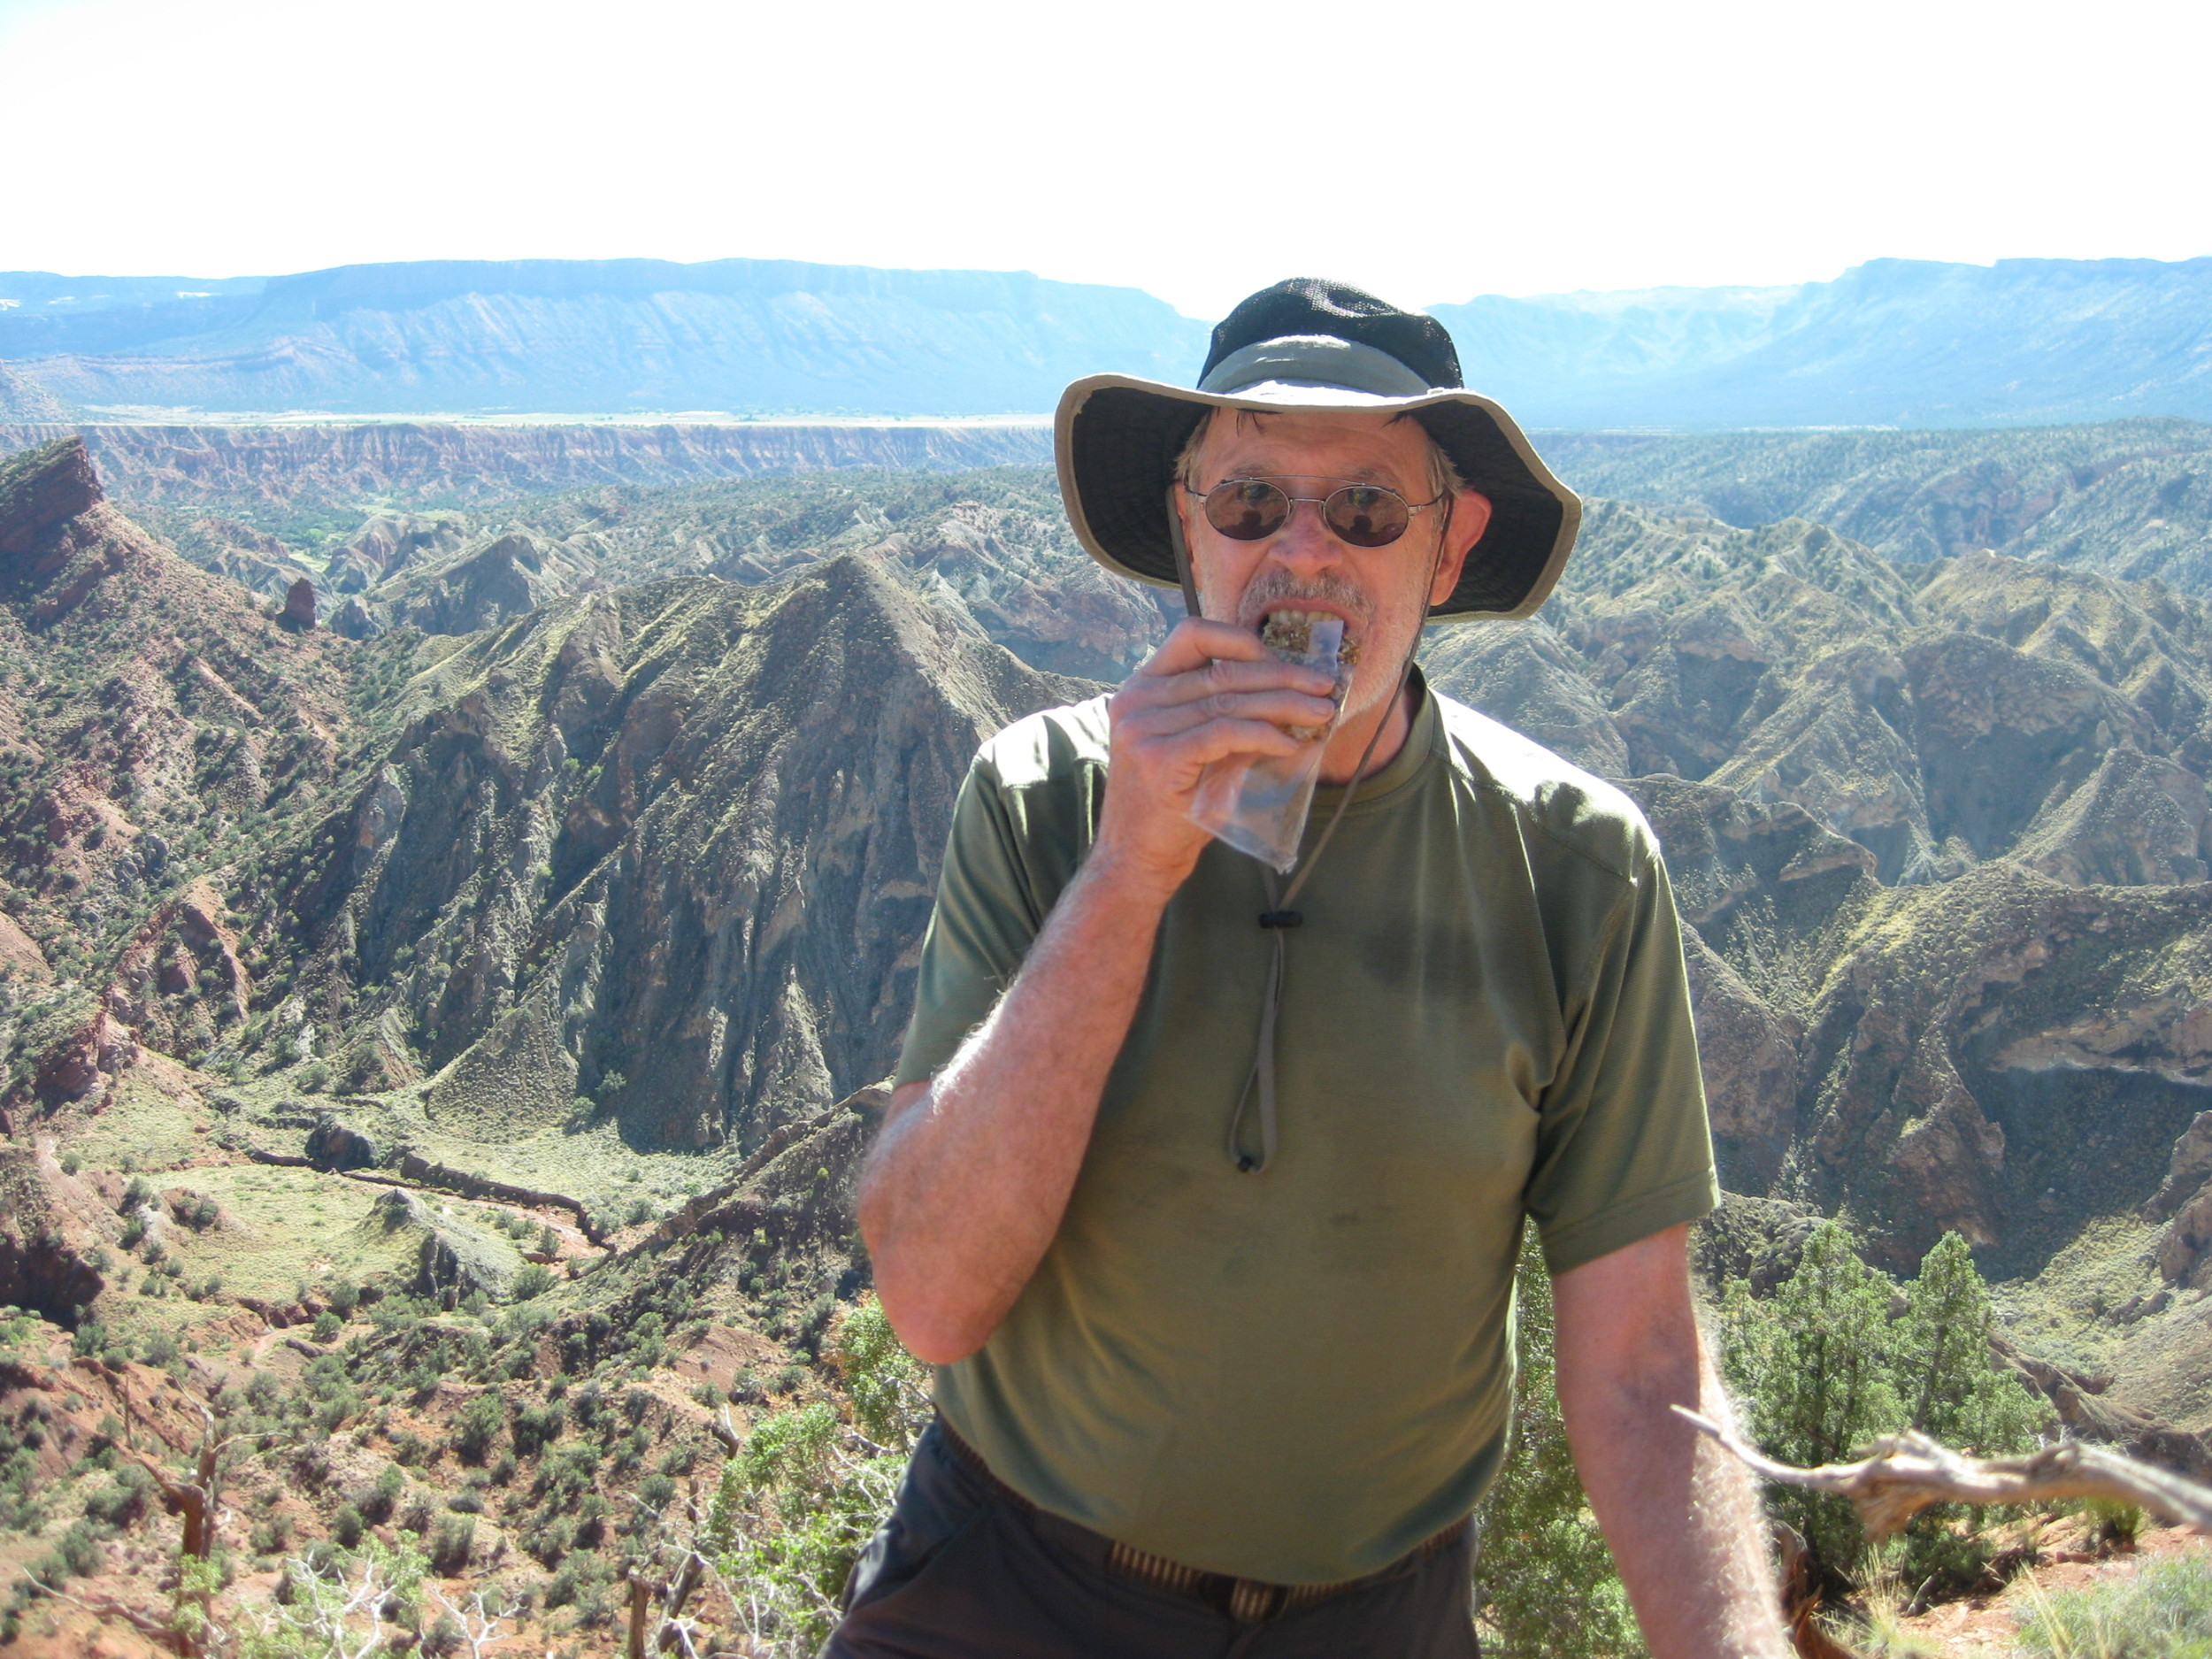 Bill and his pal John (see photo below), both from Durango, CO took a package of granola bars with them as they hiked and rappelled in the Fisher Towers area, east of Moab, Utah.